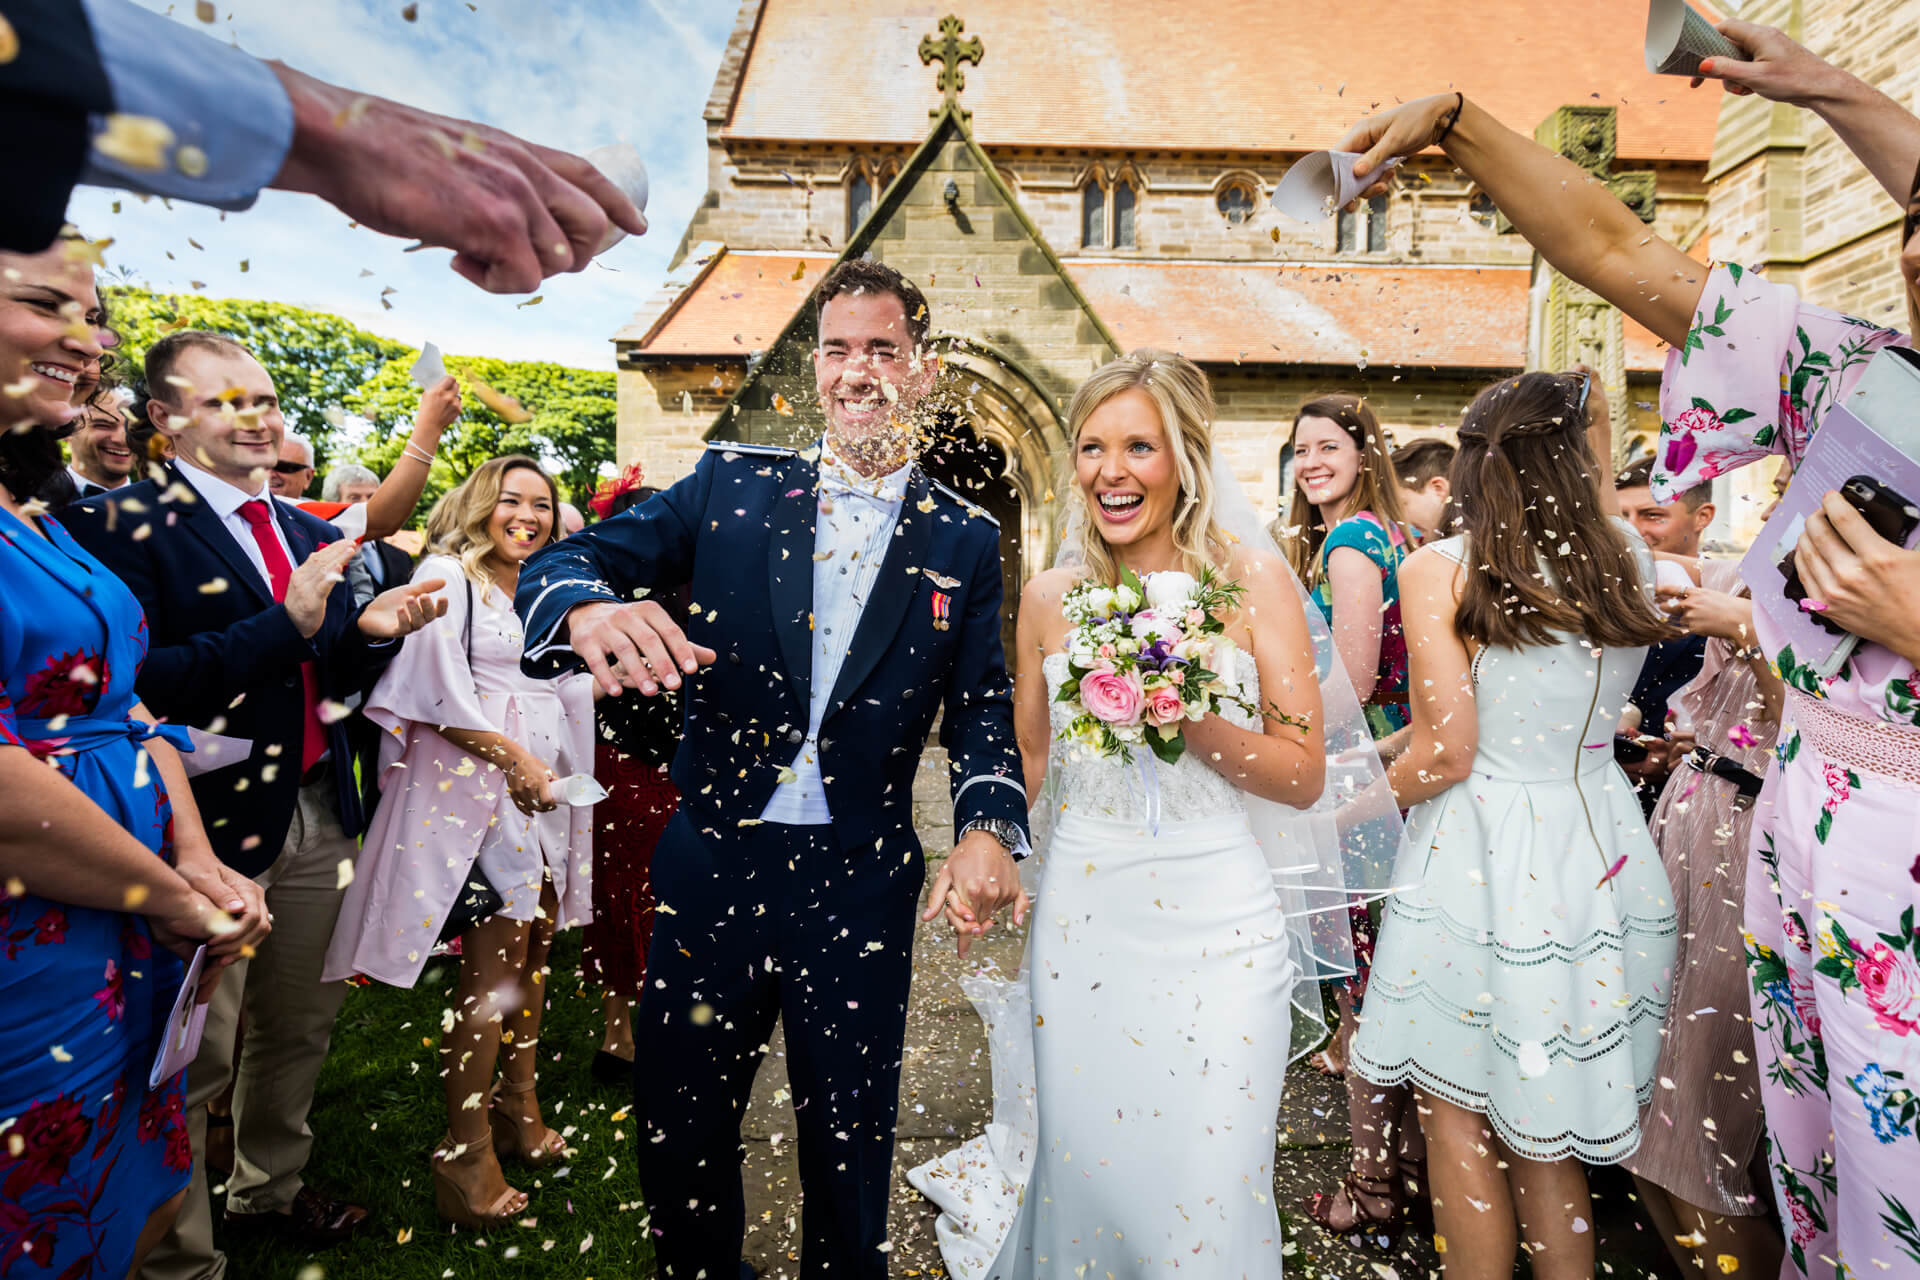 wedding couple being showered with confetti